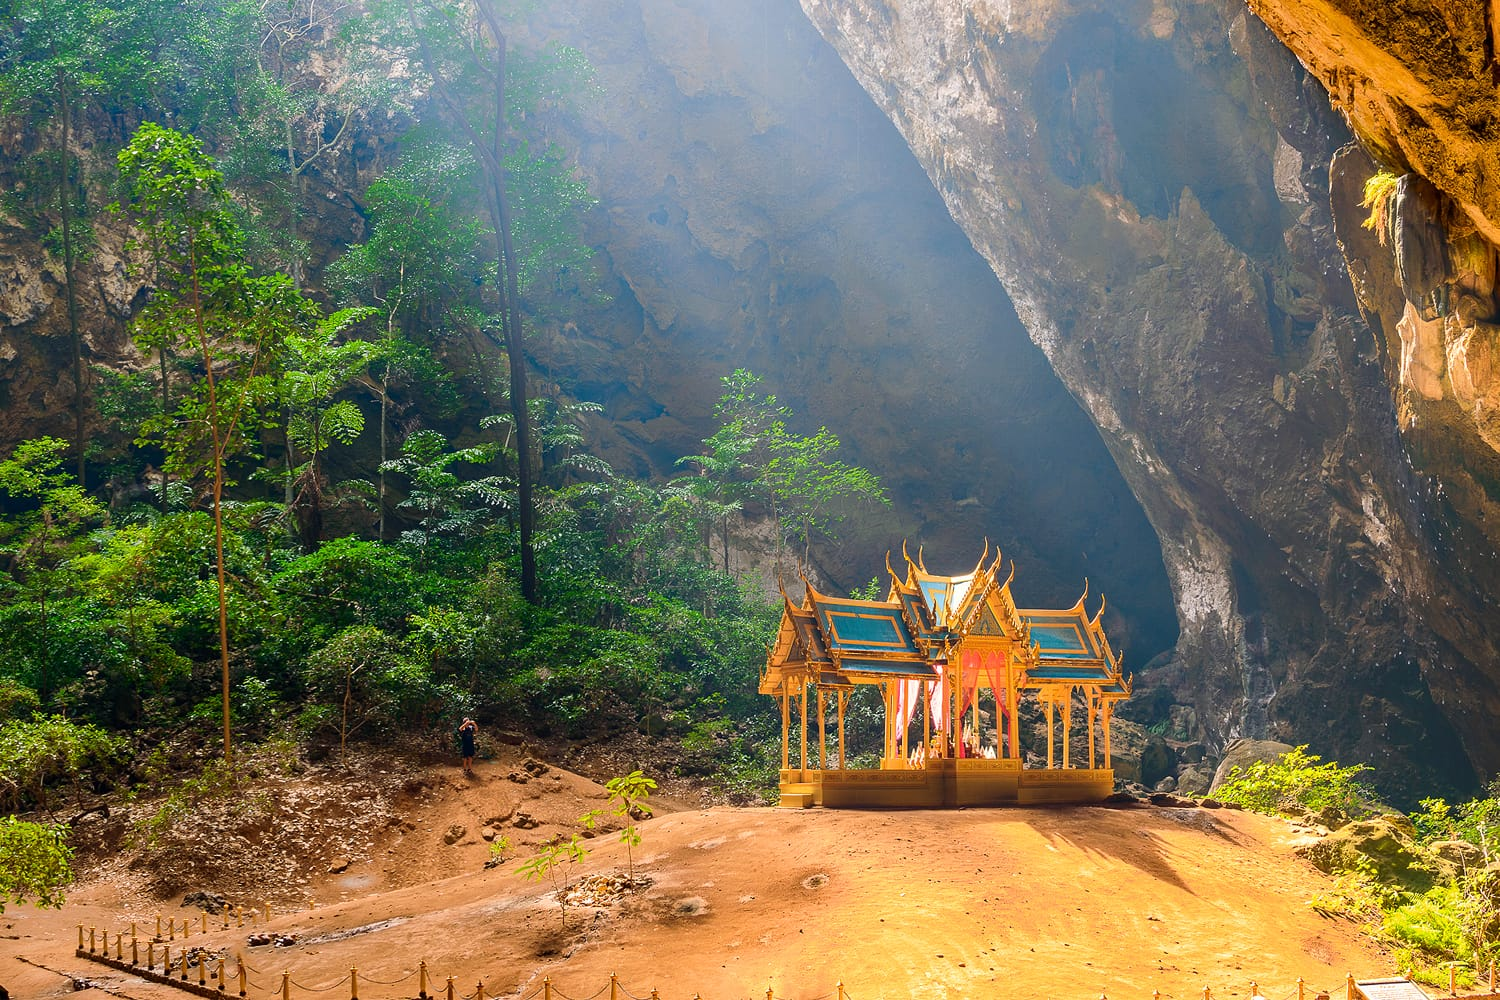 Phraya Nakhon Cave is the most popular attraction is a four-gabled pavilion constructed during the reign of King Rama its beauty and distinctive identity the pavilion at Prachuap Khiri Khan, Thailand.